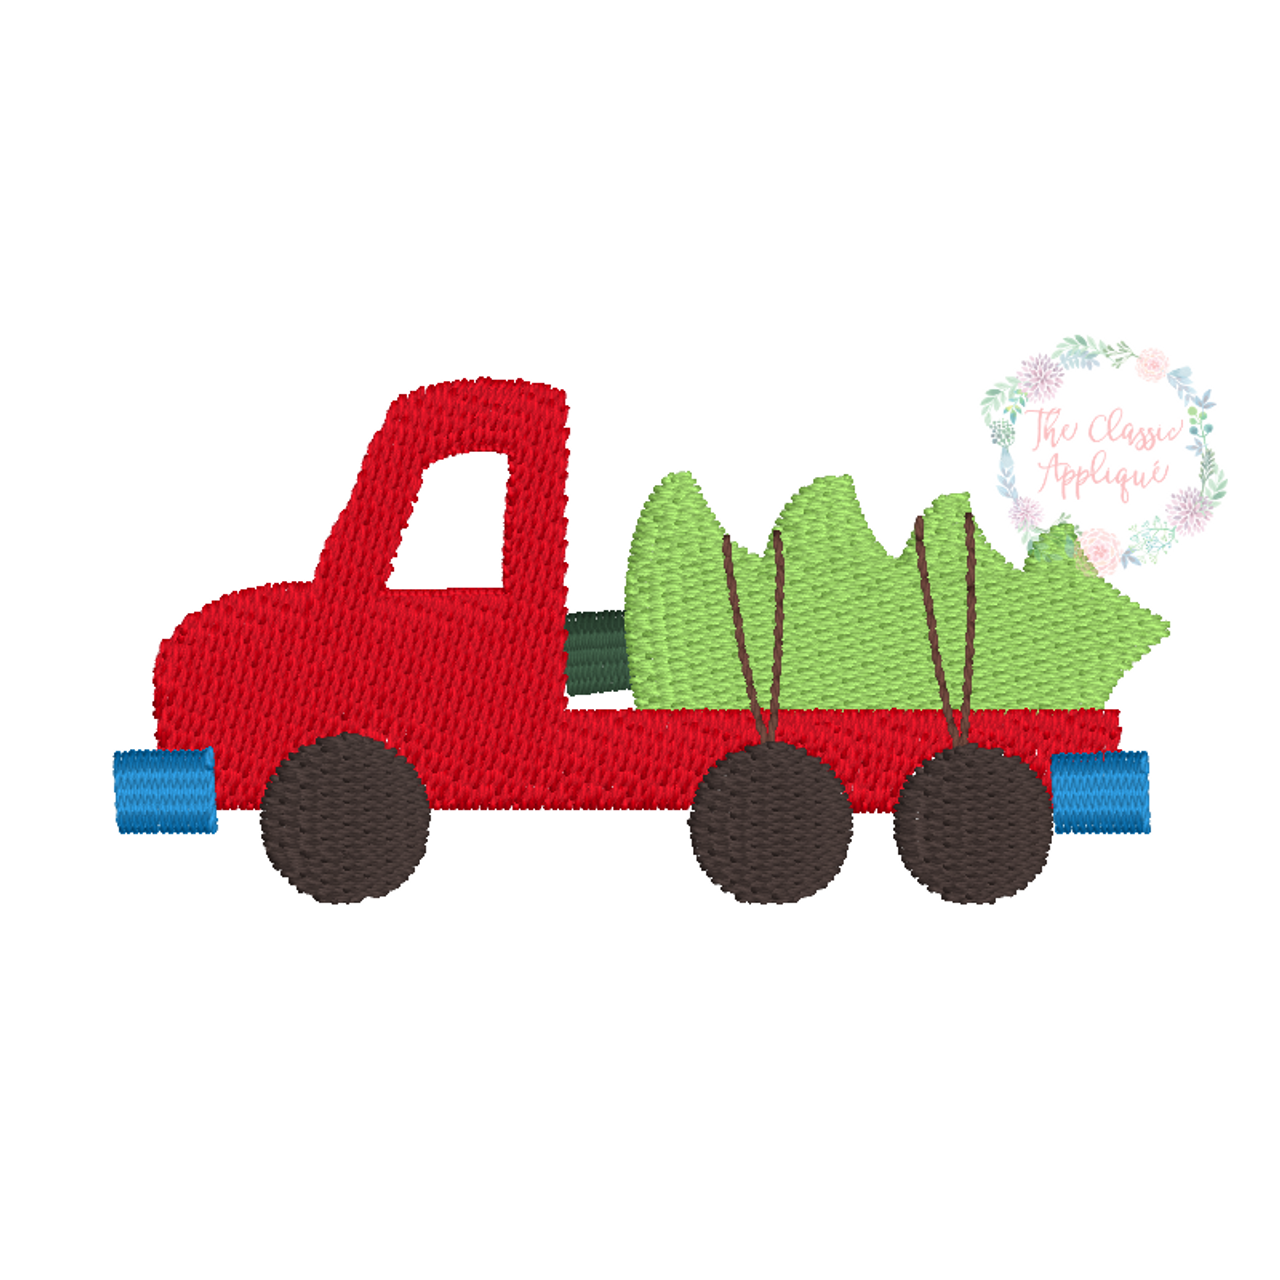 Flatbed Truck With Christmas Tree Mini Fill Stitch Machine Embroidery Design File By The Classic Applique